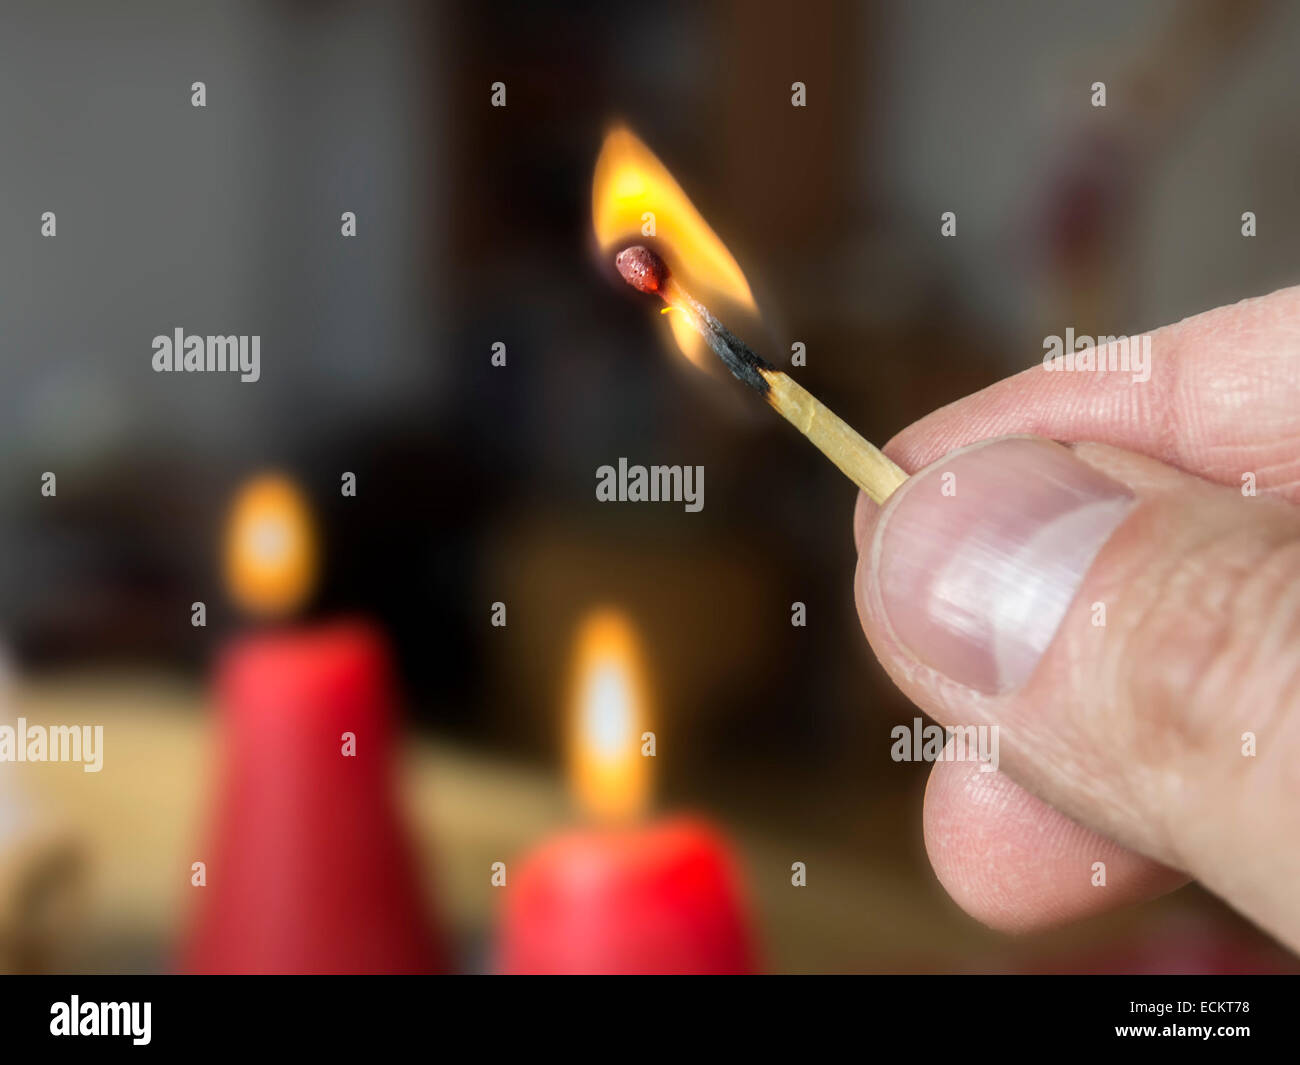 Picture of an burning match with candles in the background - Stock Image